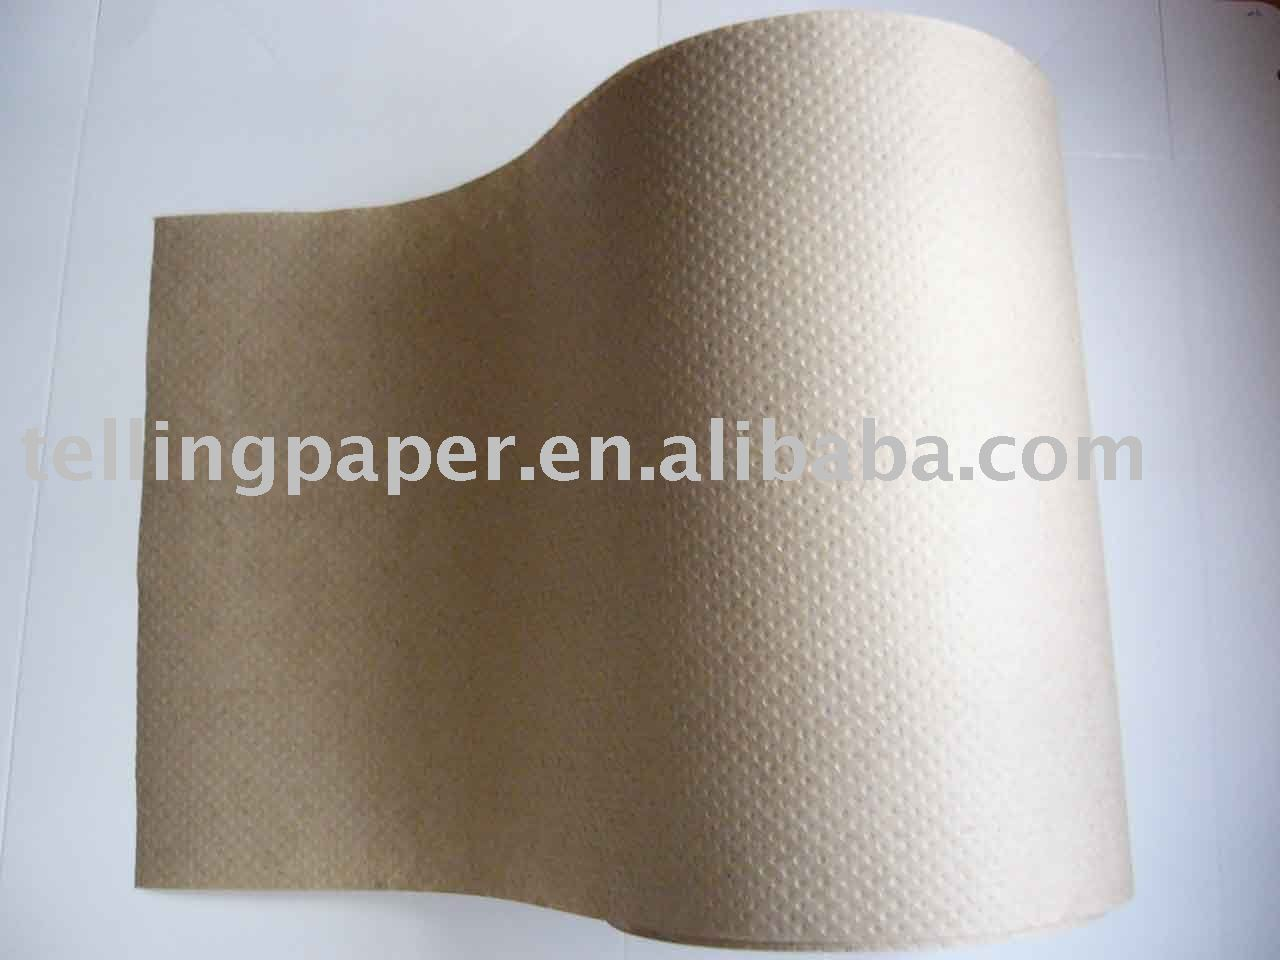 Industrial paper towel jumbo roll / hand towel